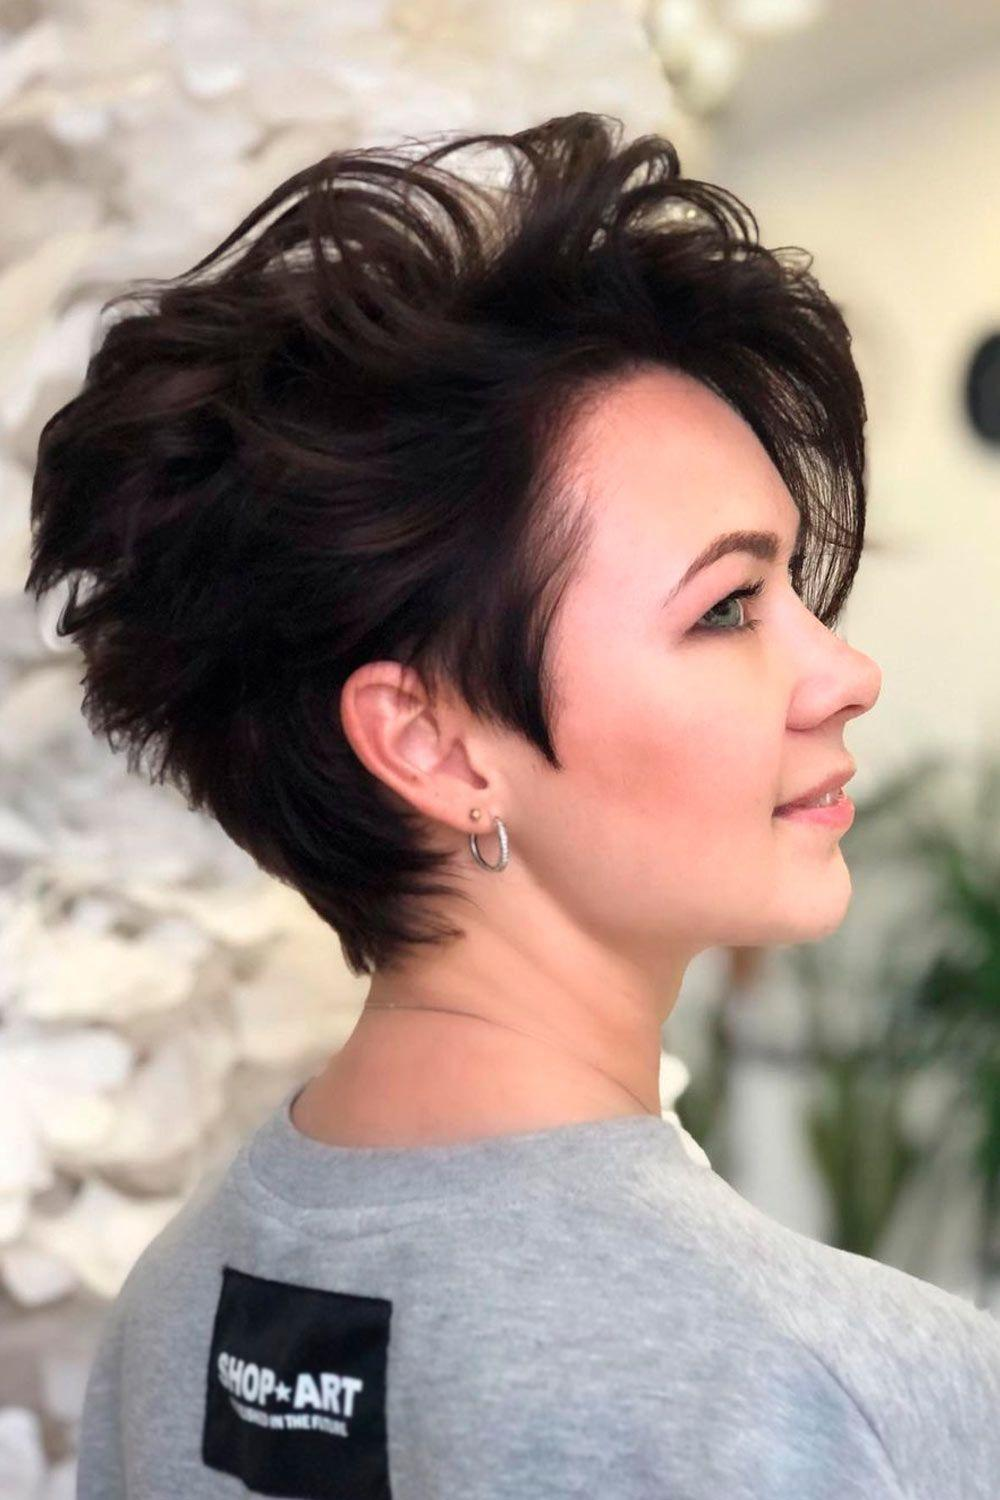 35+ Types Of Asymmetrical Pixie To Consider | LoveHairStyles.com